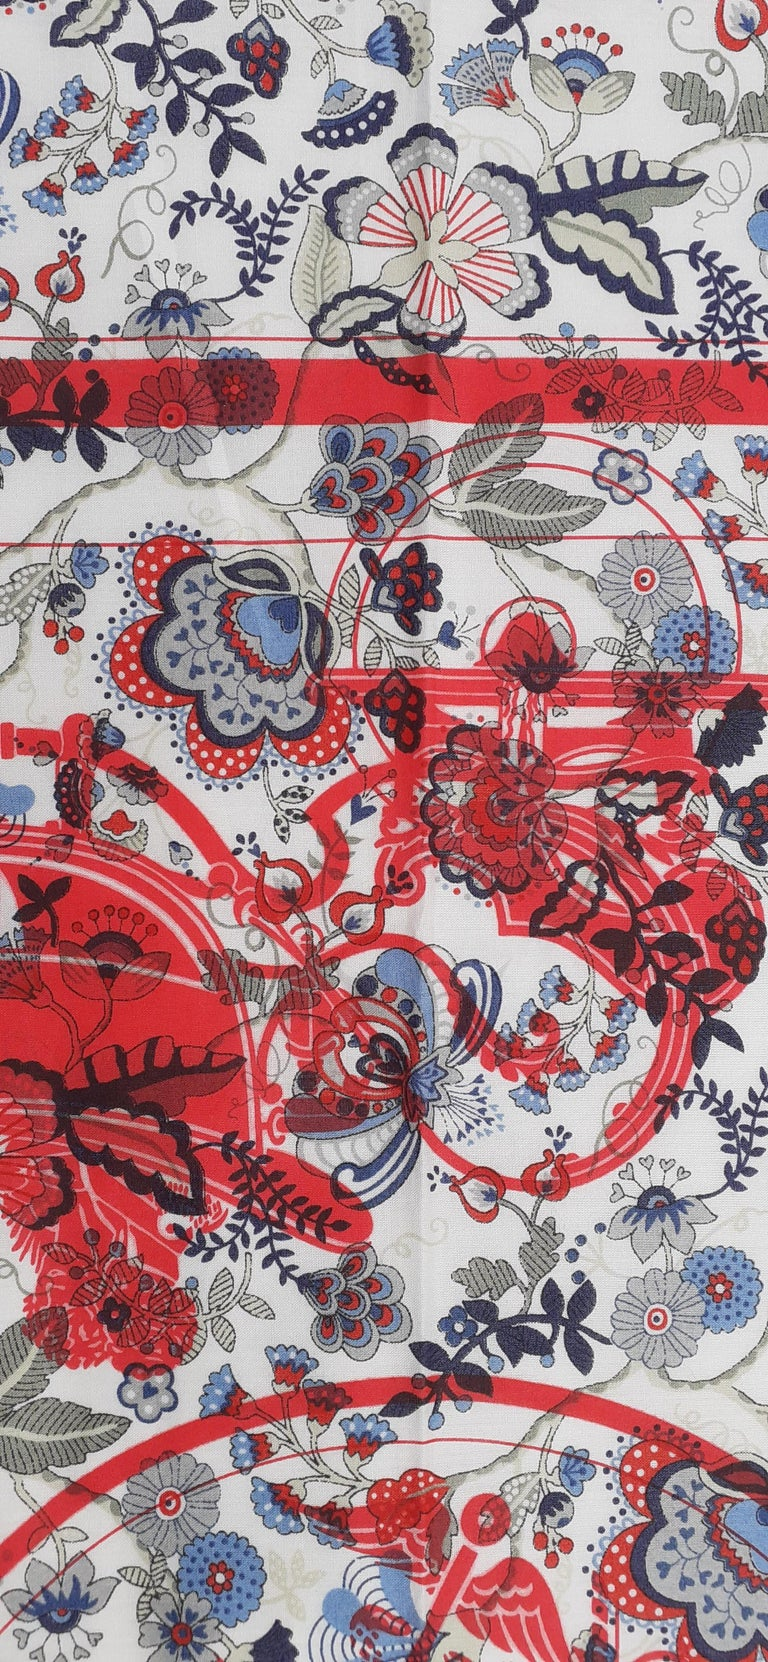 Hermès For Liberty Cotton Scarf Ex Libris and Flowers 26' Limited Edition For Sale 5